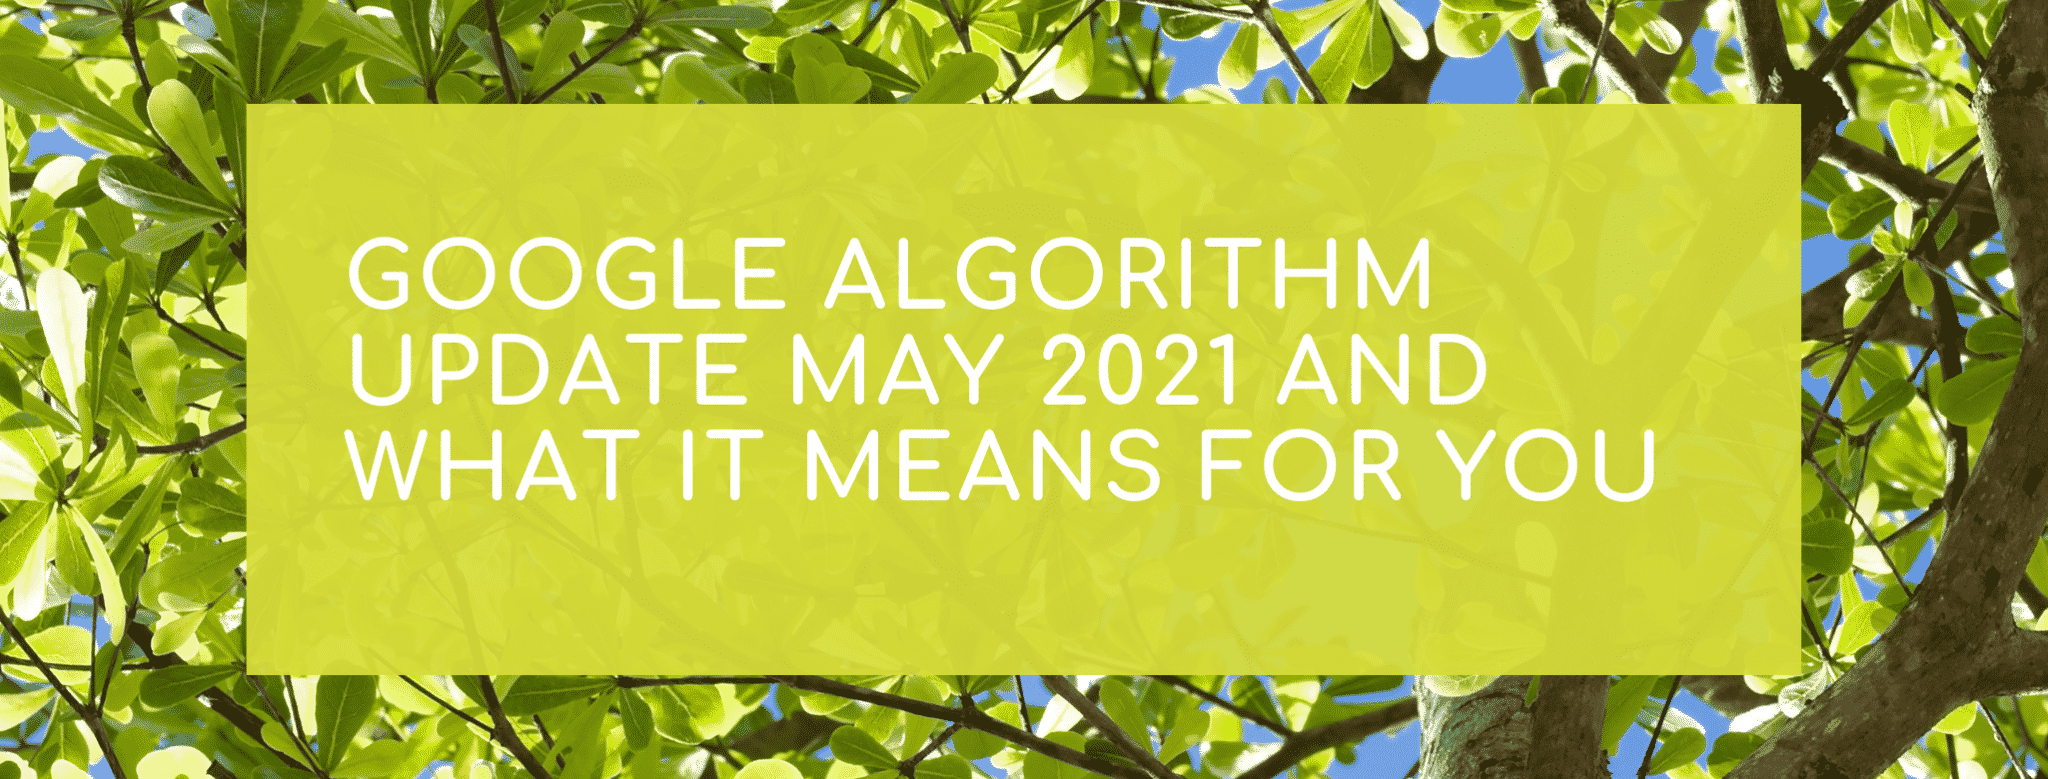 Google Algorithm Update May 2021 and what it means for you